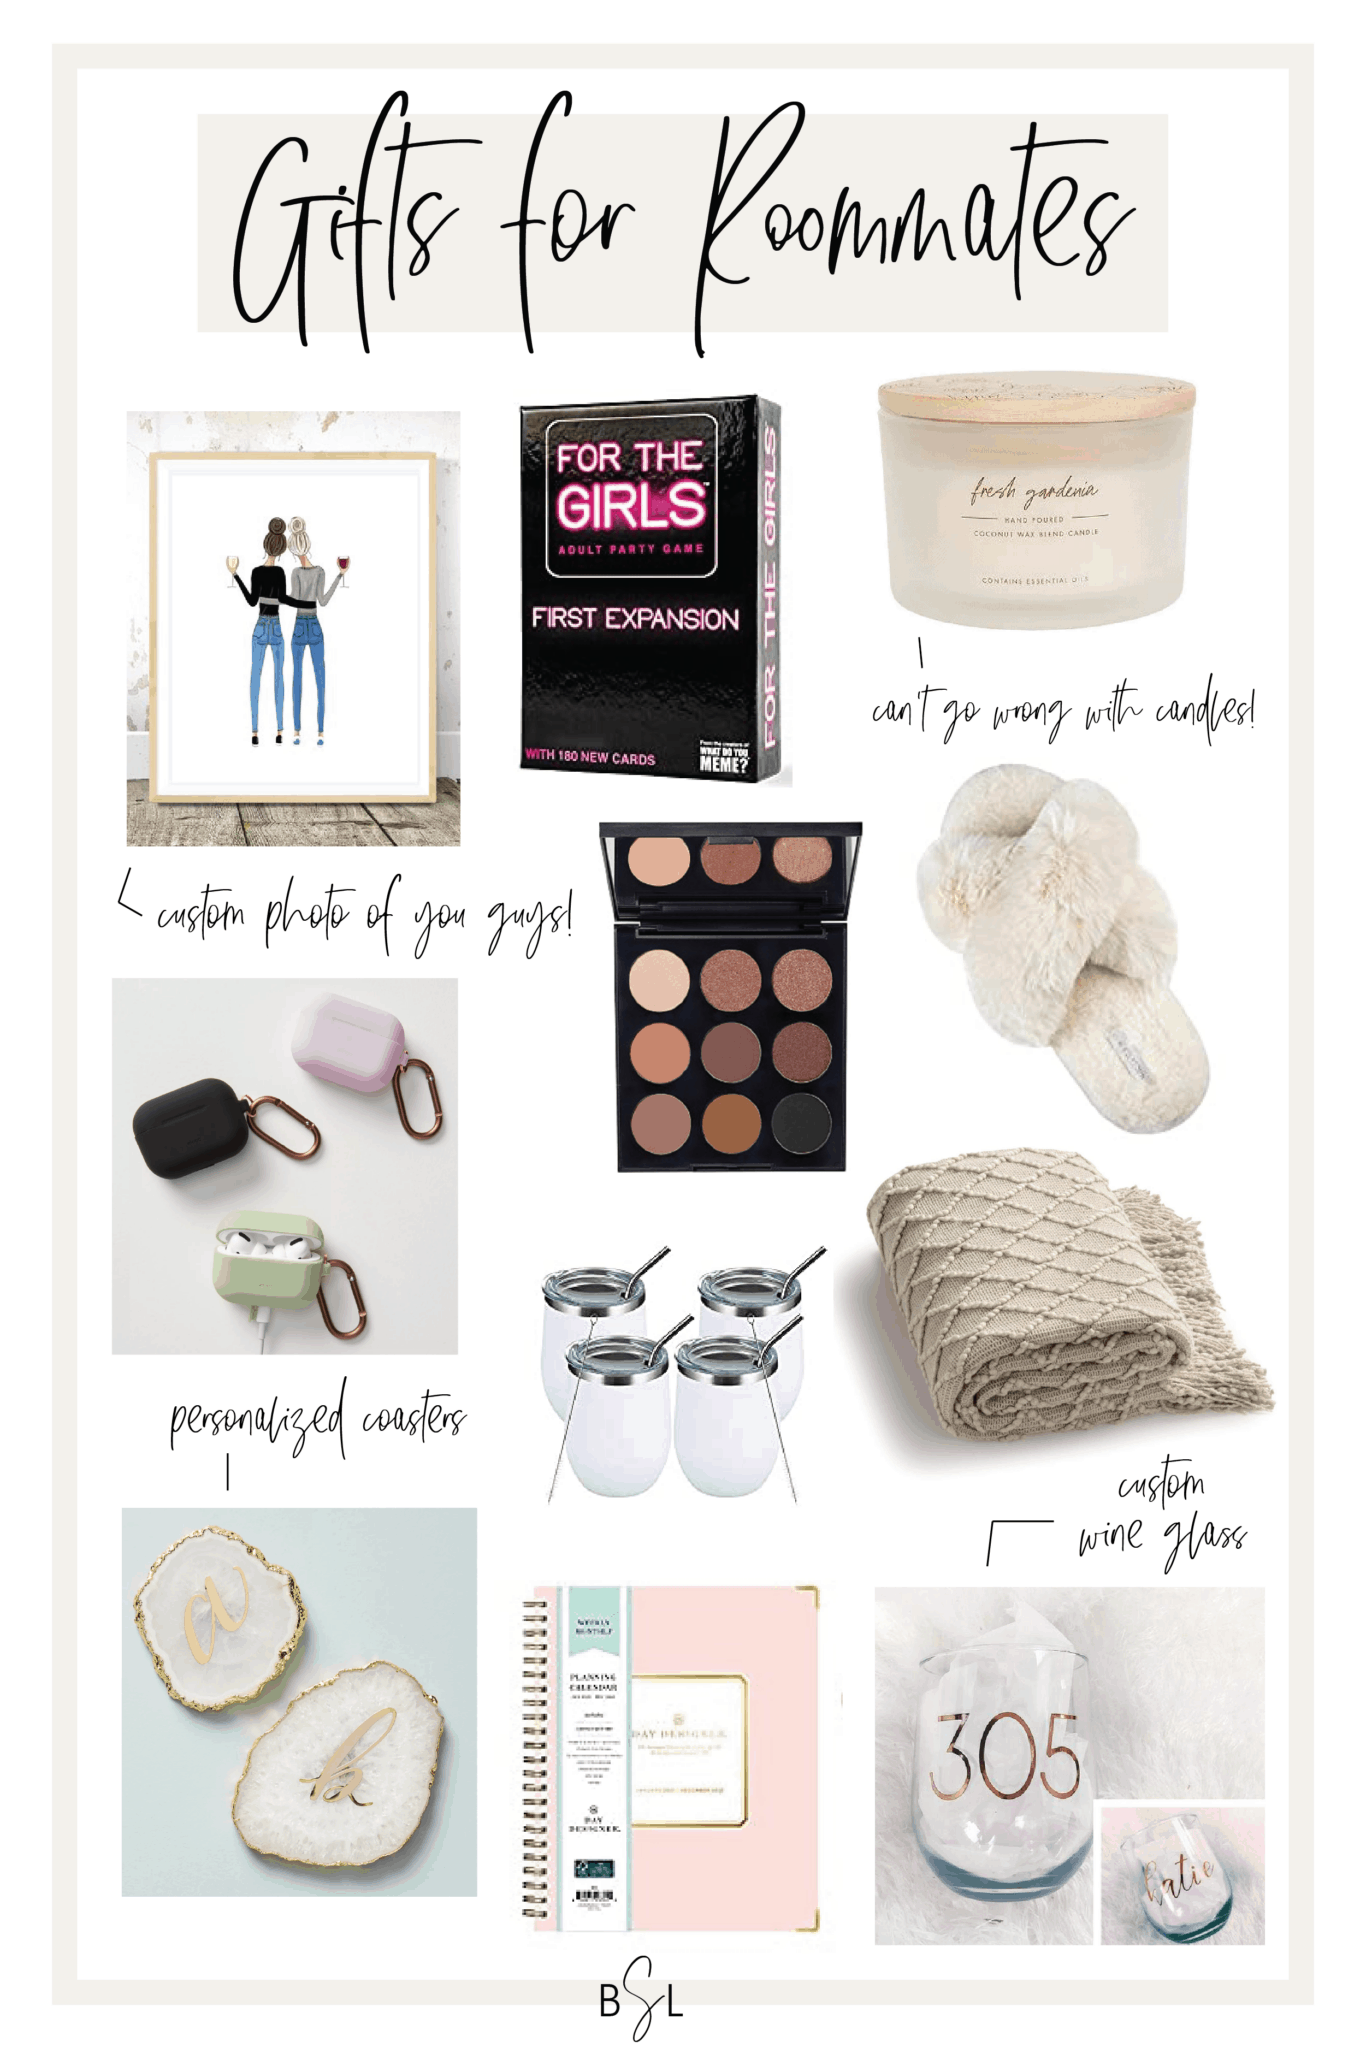 gifts for roommates